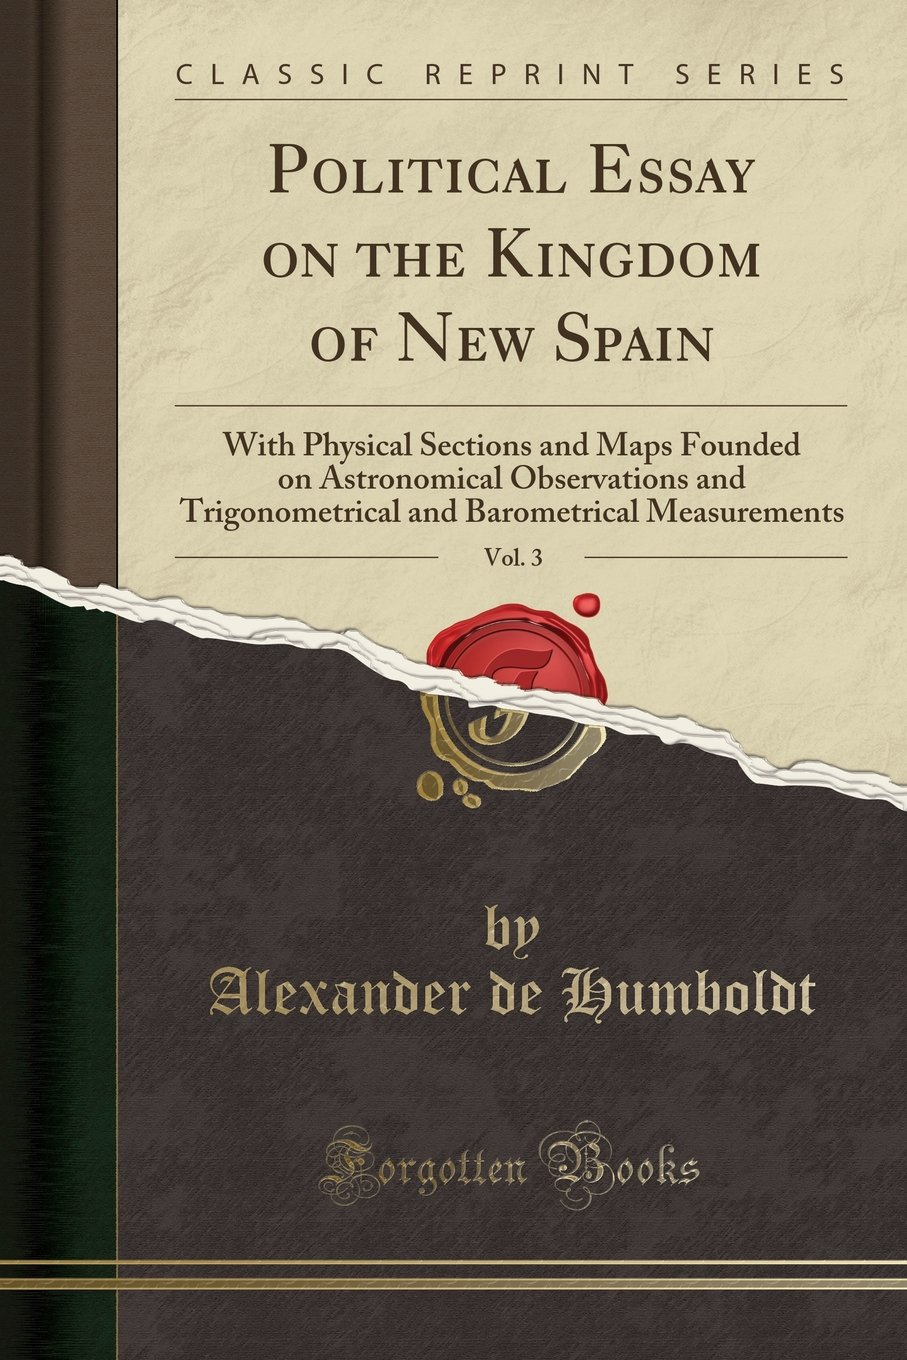 Download Political Essay on the Kingdom of New Spain, Vol. 3: With Physical Sections and Maps Founded on Astronomical Observations and Trigonometrical and Barometrical Measurements (Classic Reprint) pdf